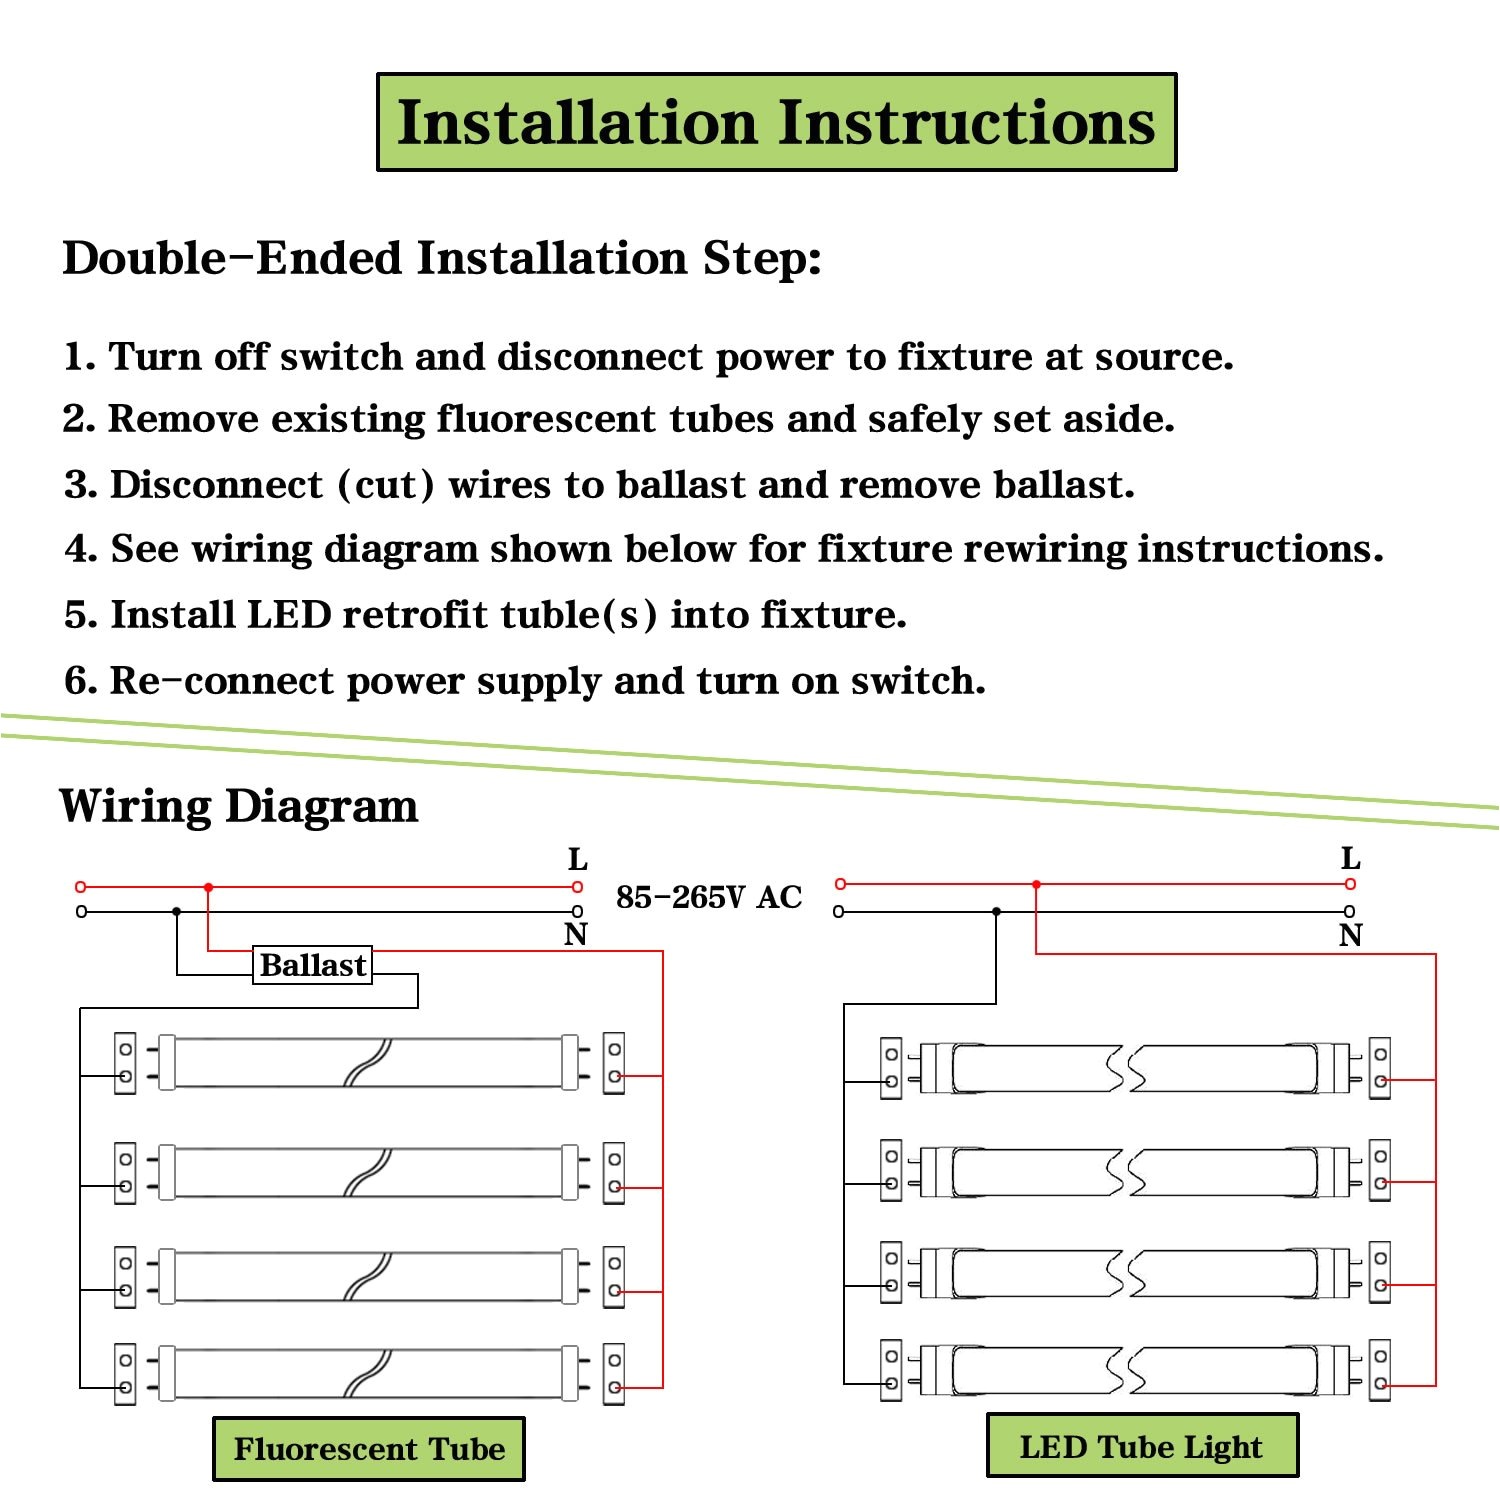 4 wire diagram for led tube fixture wiring library 4 wire diagram for led tube fixture